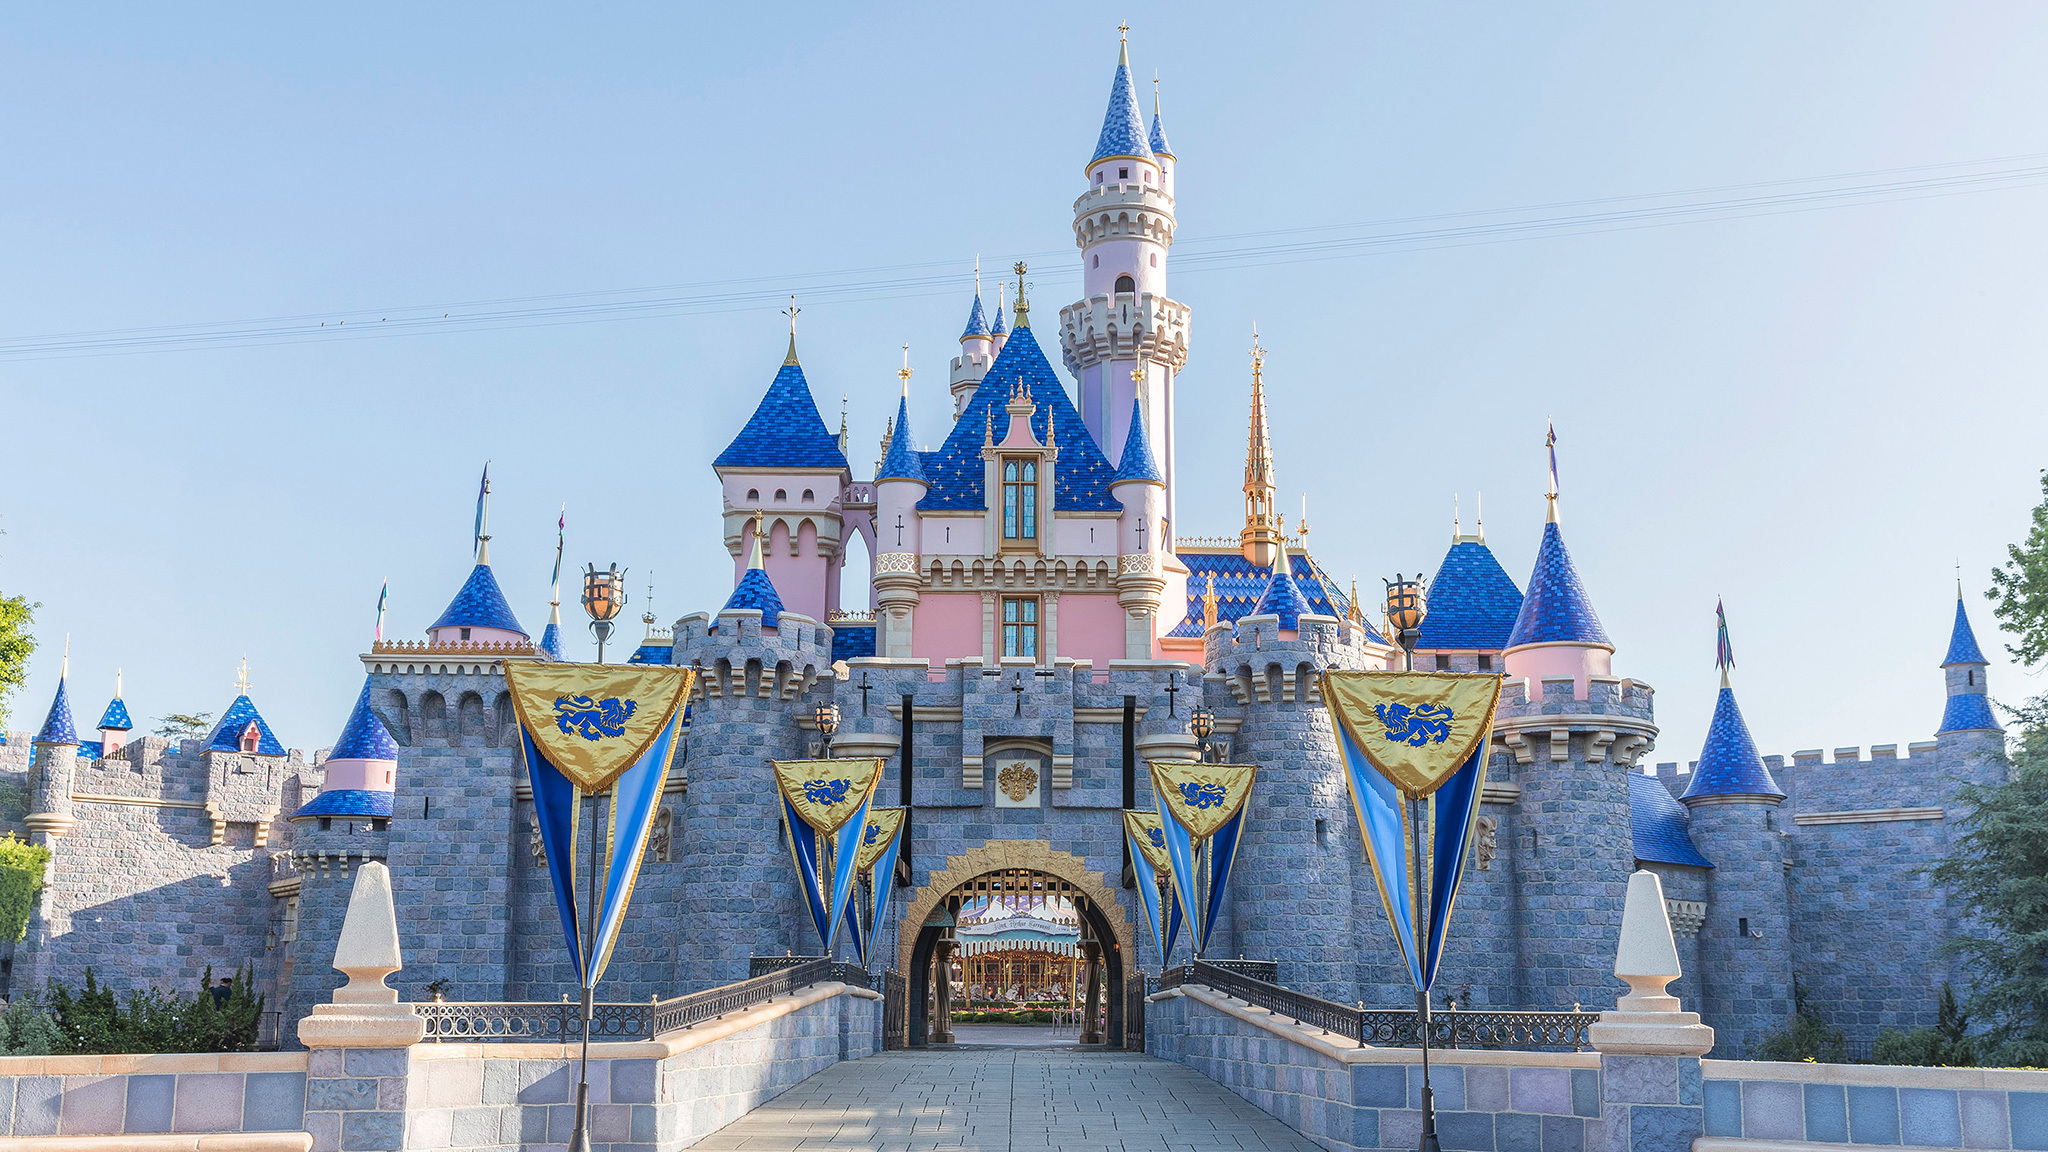 Disneyland just announced a new set of rules for its reopening